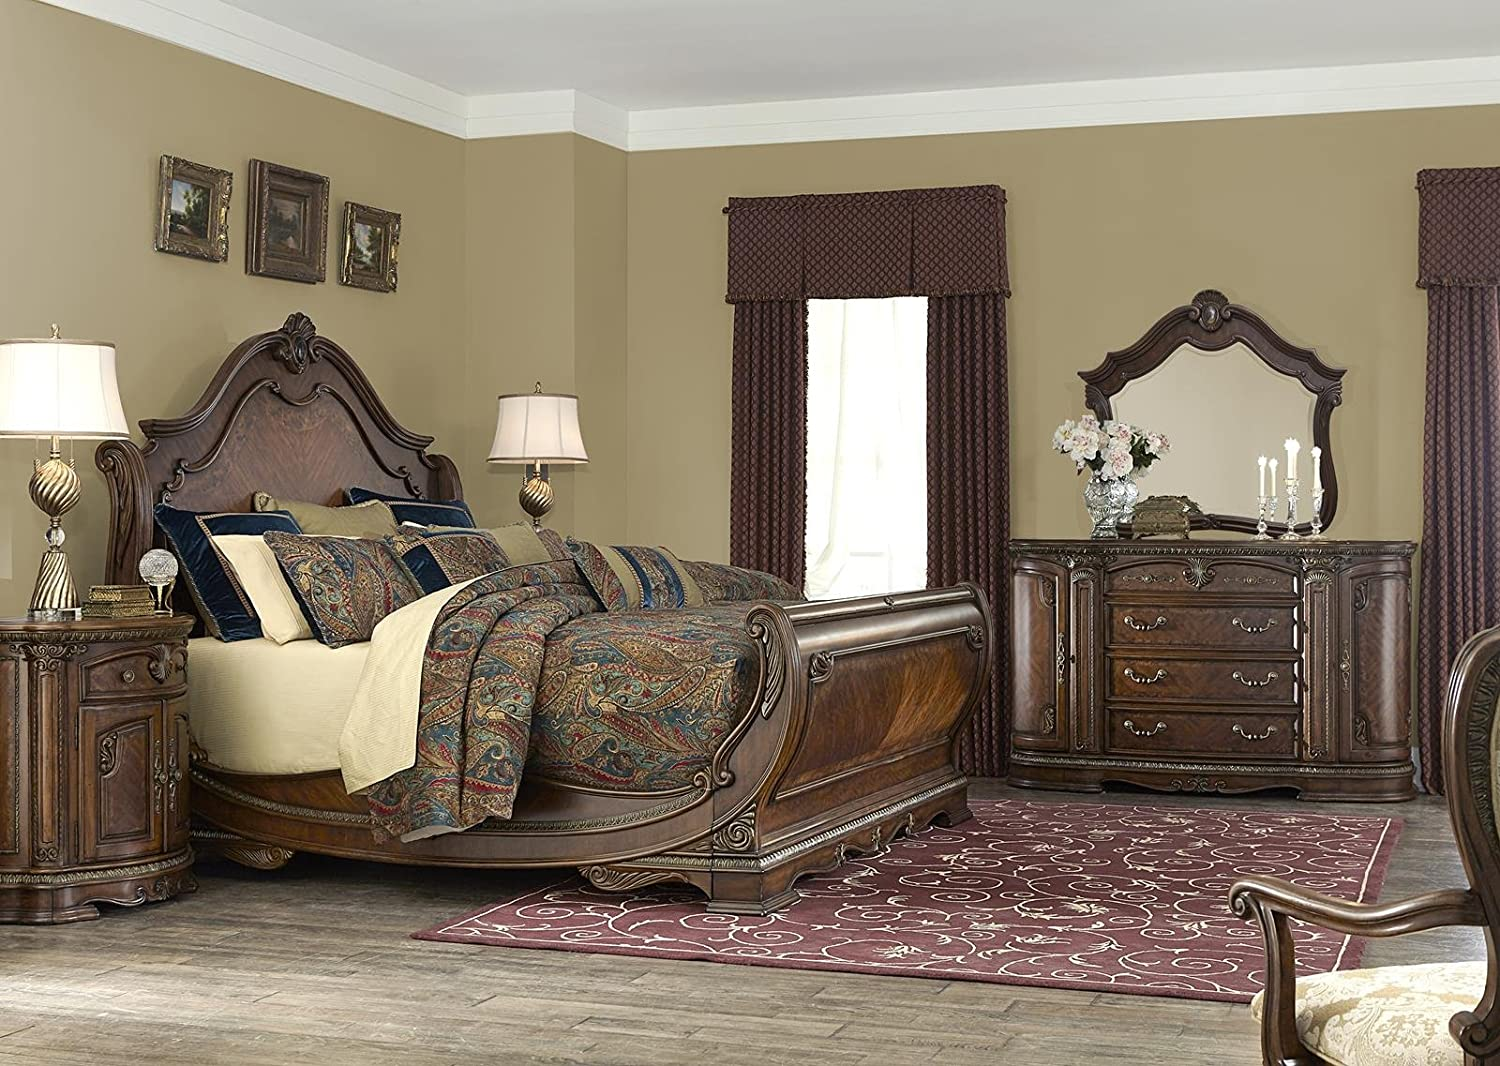 Amazon.com: AICO Bella Veneto Bedroom Set with King Bed ...